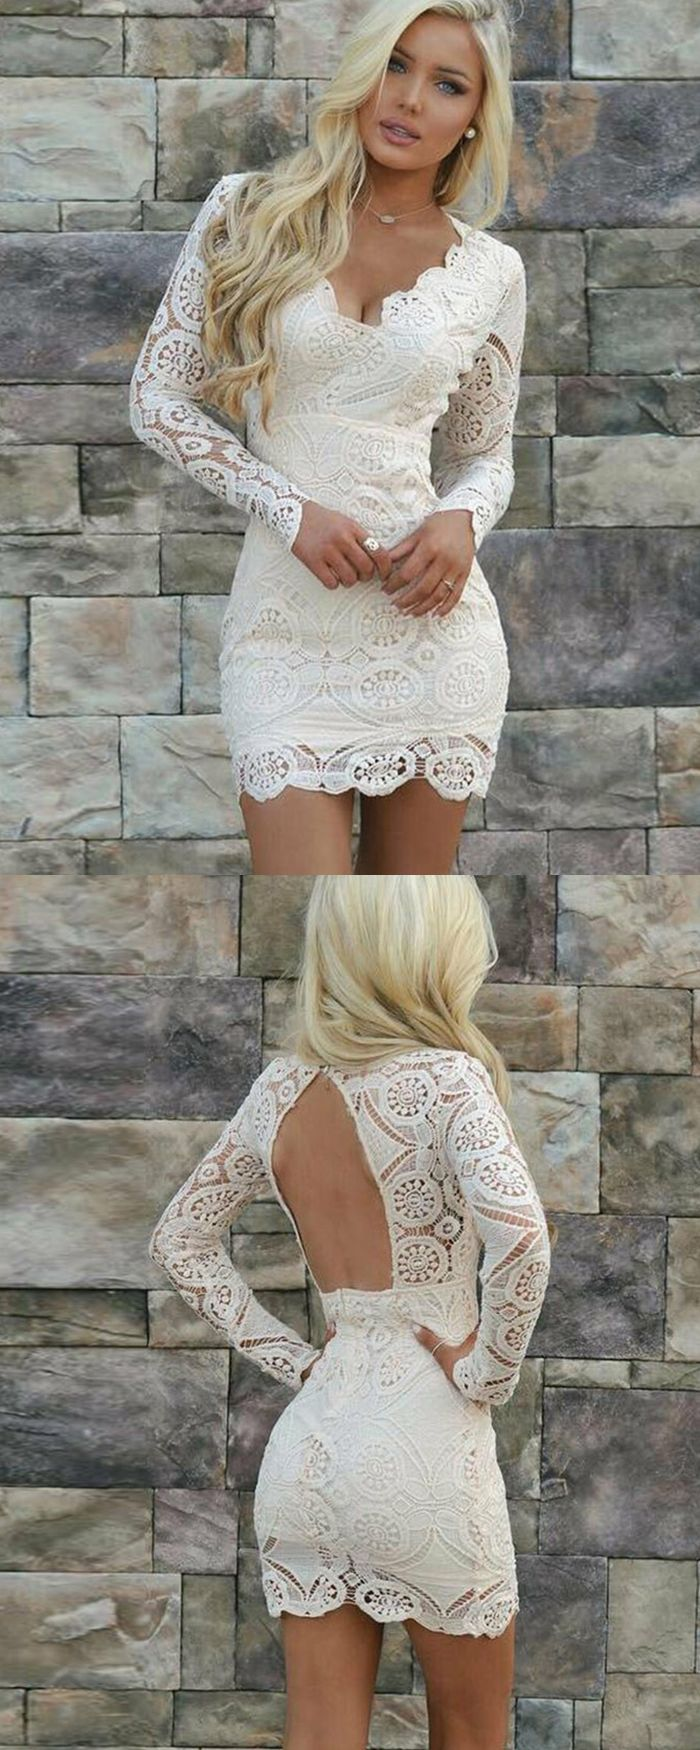 Queen anne tight ivory lace party dress with long sleeves hd